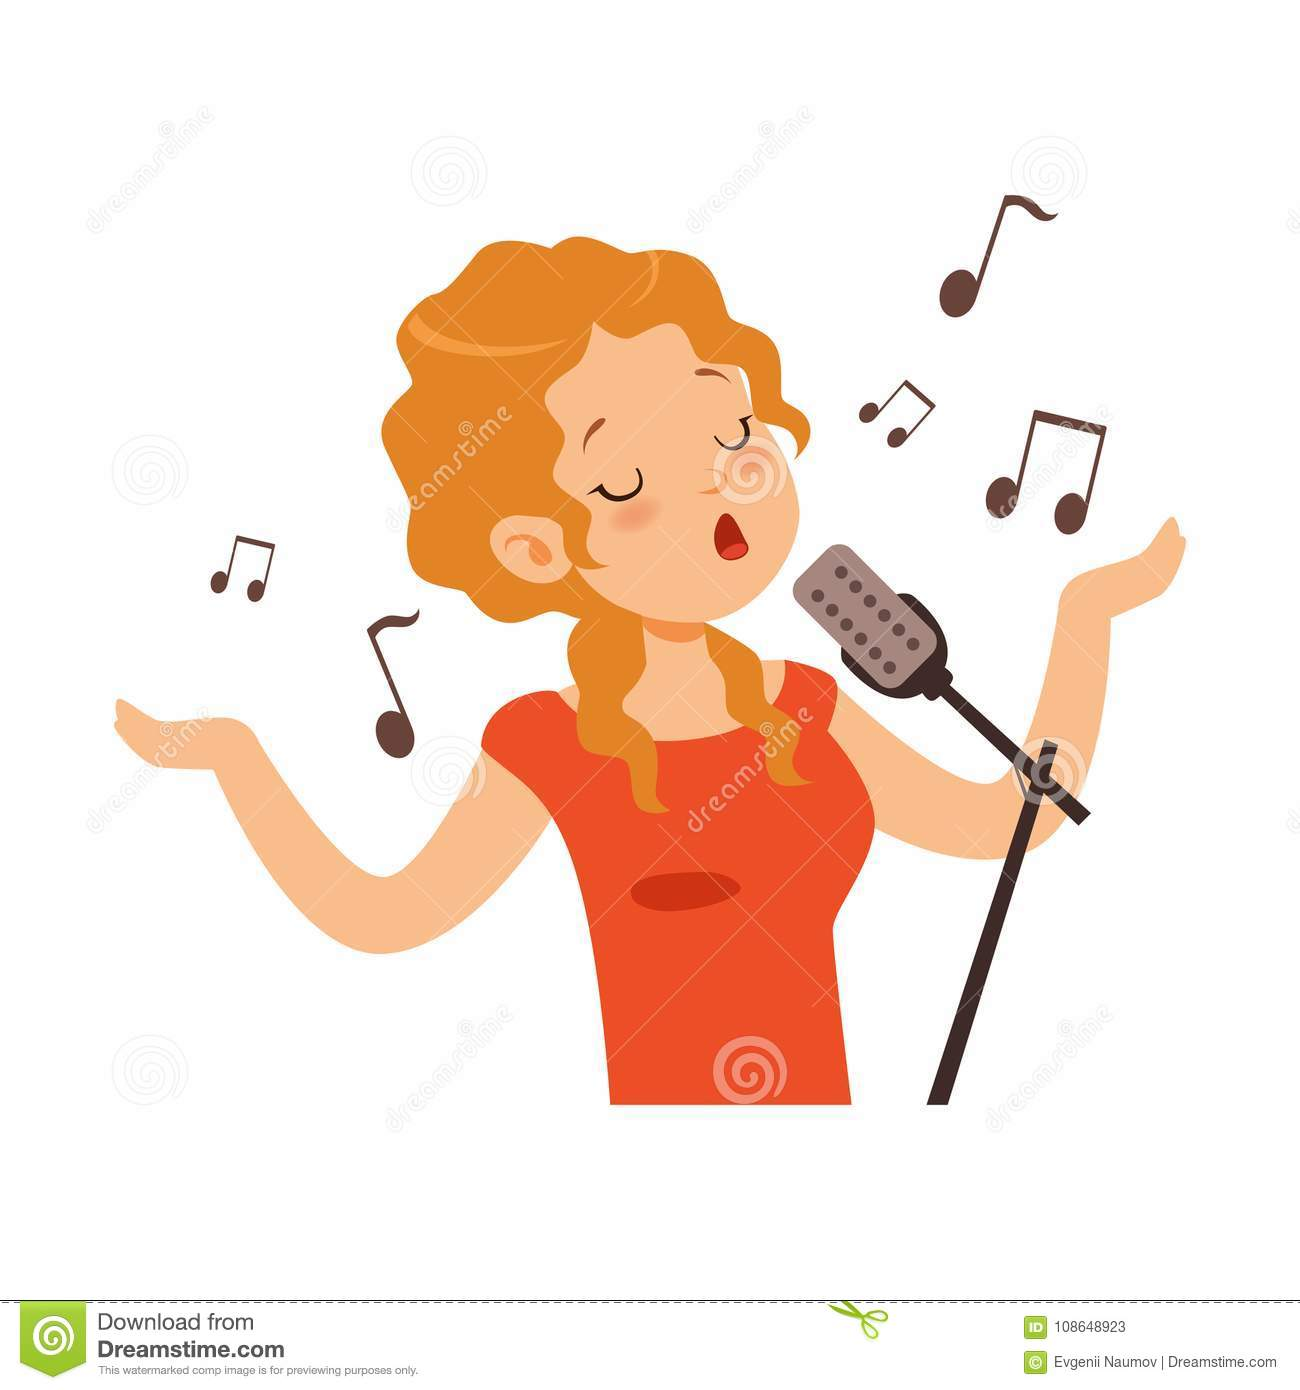 Singing Cartoons, Illustrations & Vector Stock Images